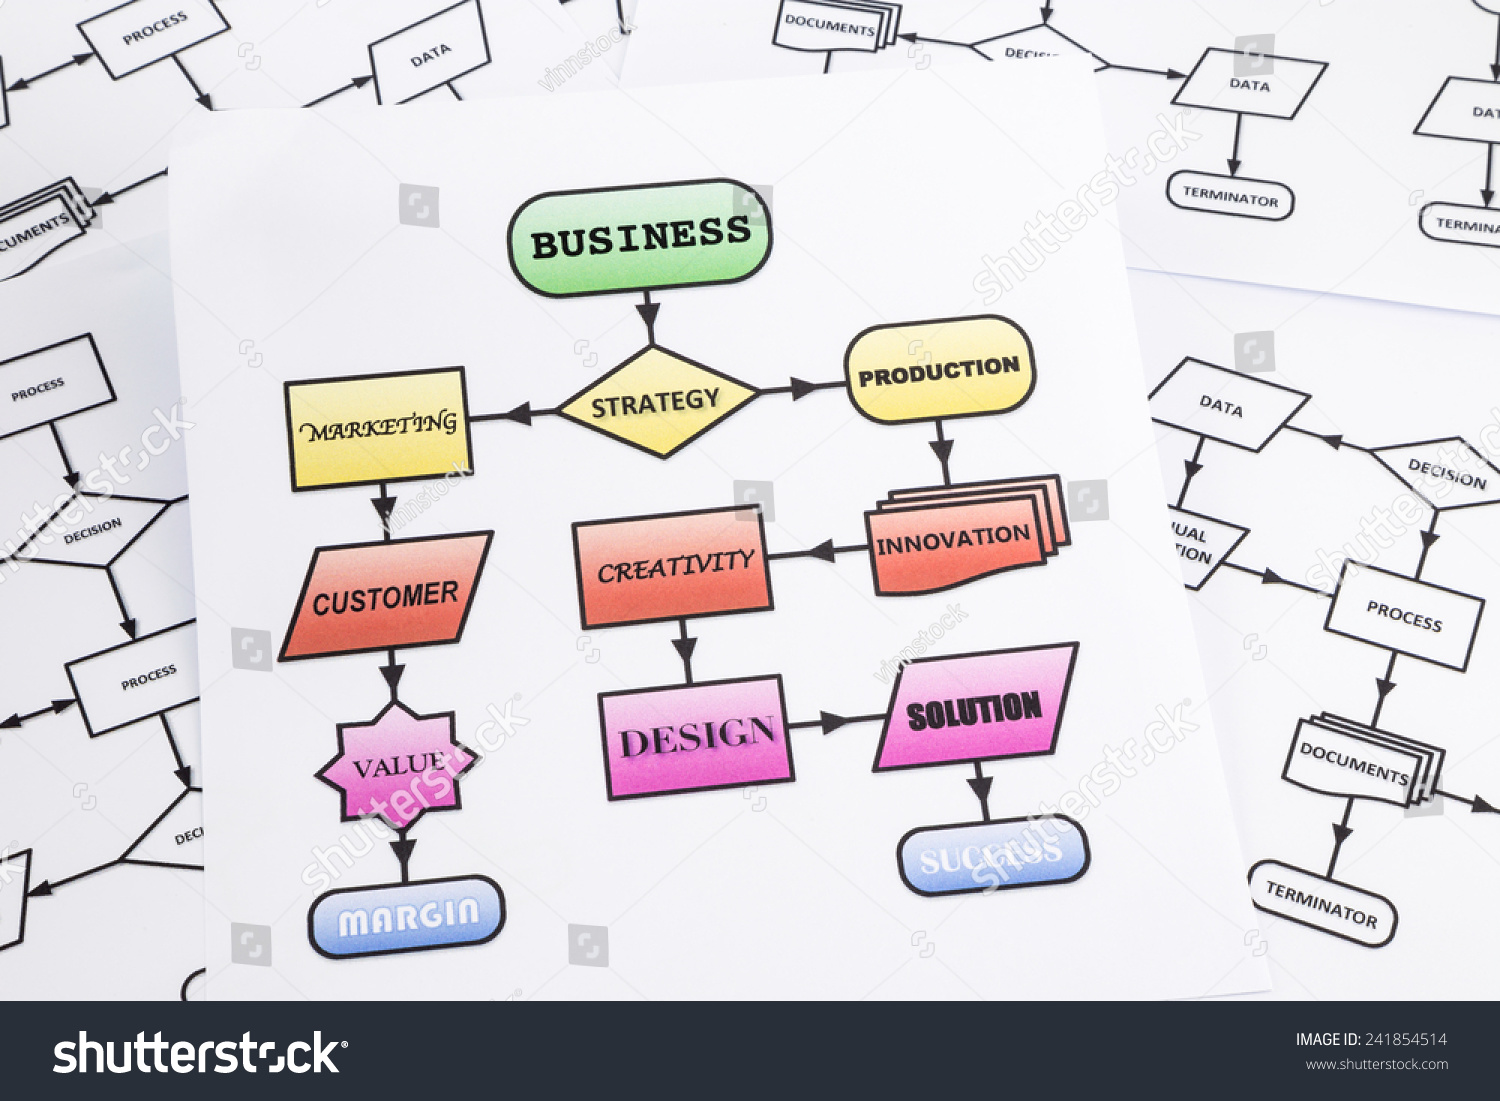 Flow chart of business process analysis with arrows and words in colorful process  flow chart,